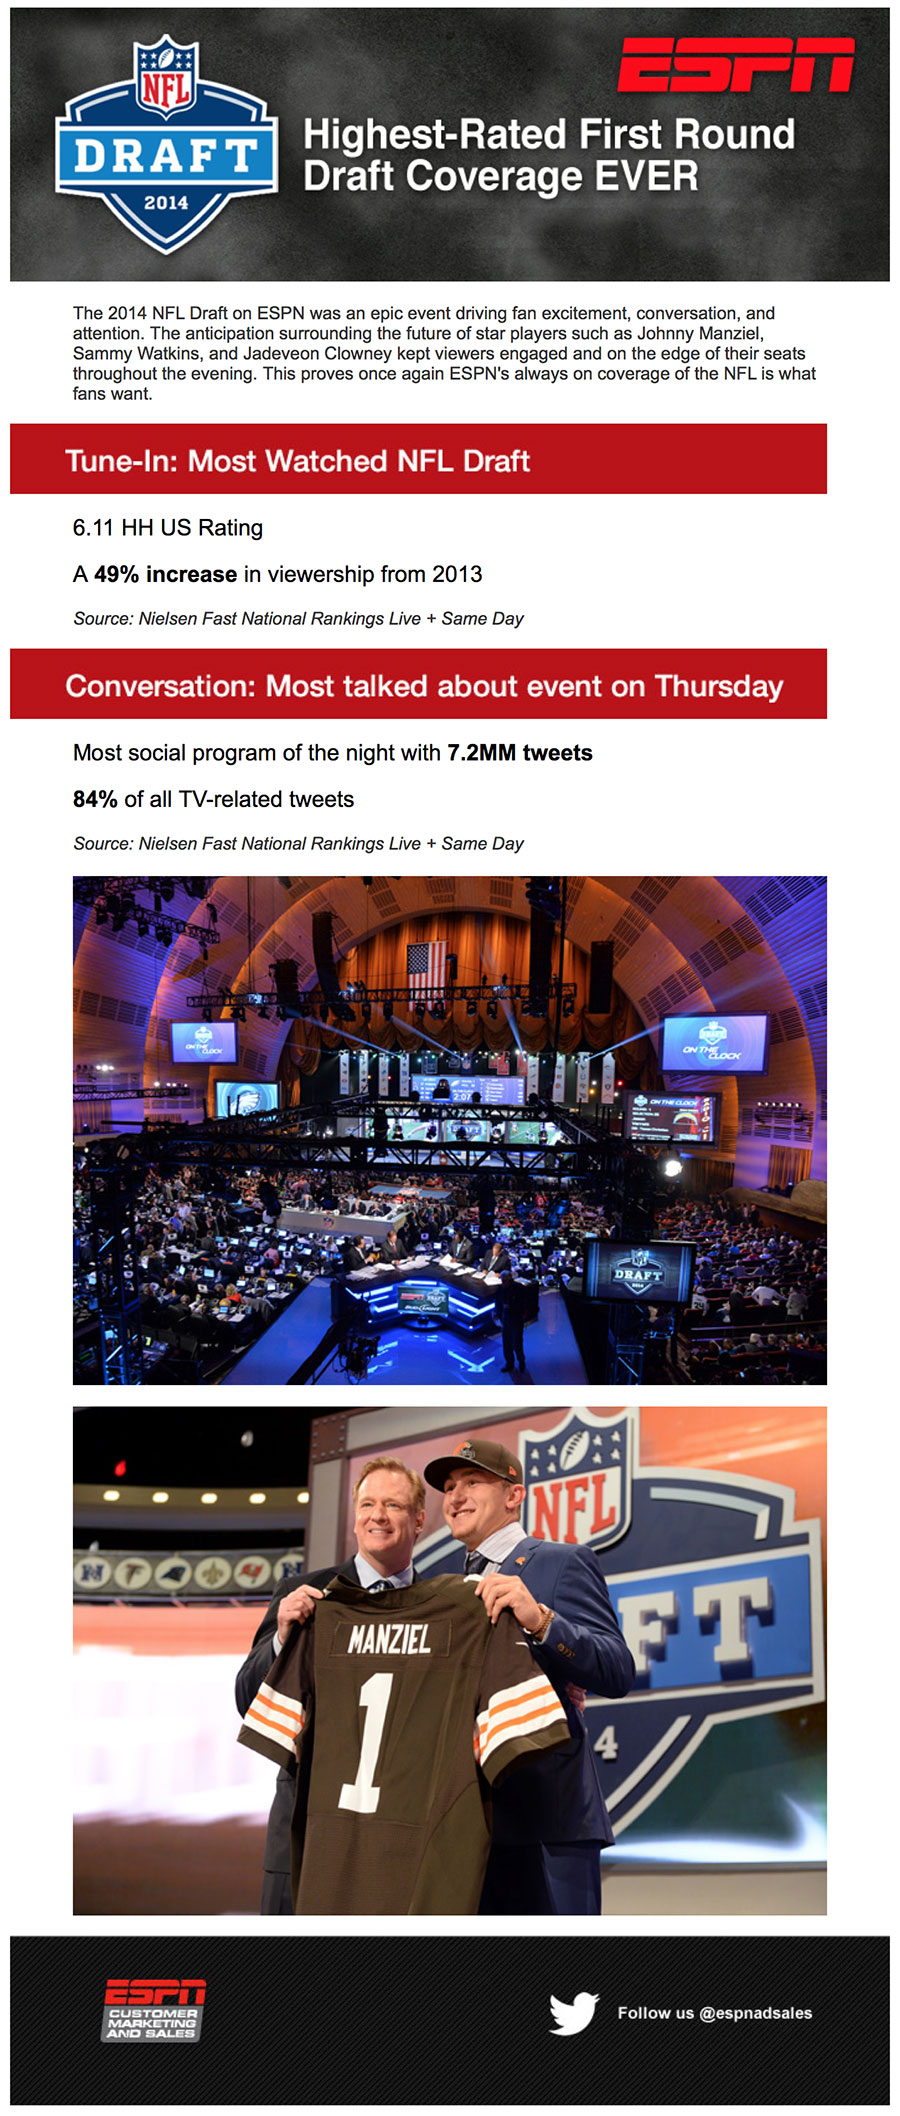 ESPNCMS Stream - NFL Draft - Highest Rated First Round Draft Coverage Ever